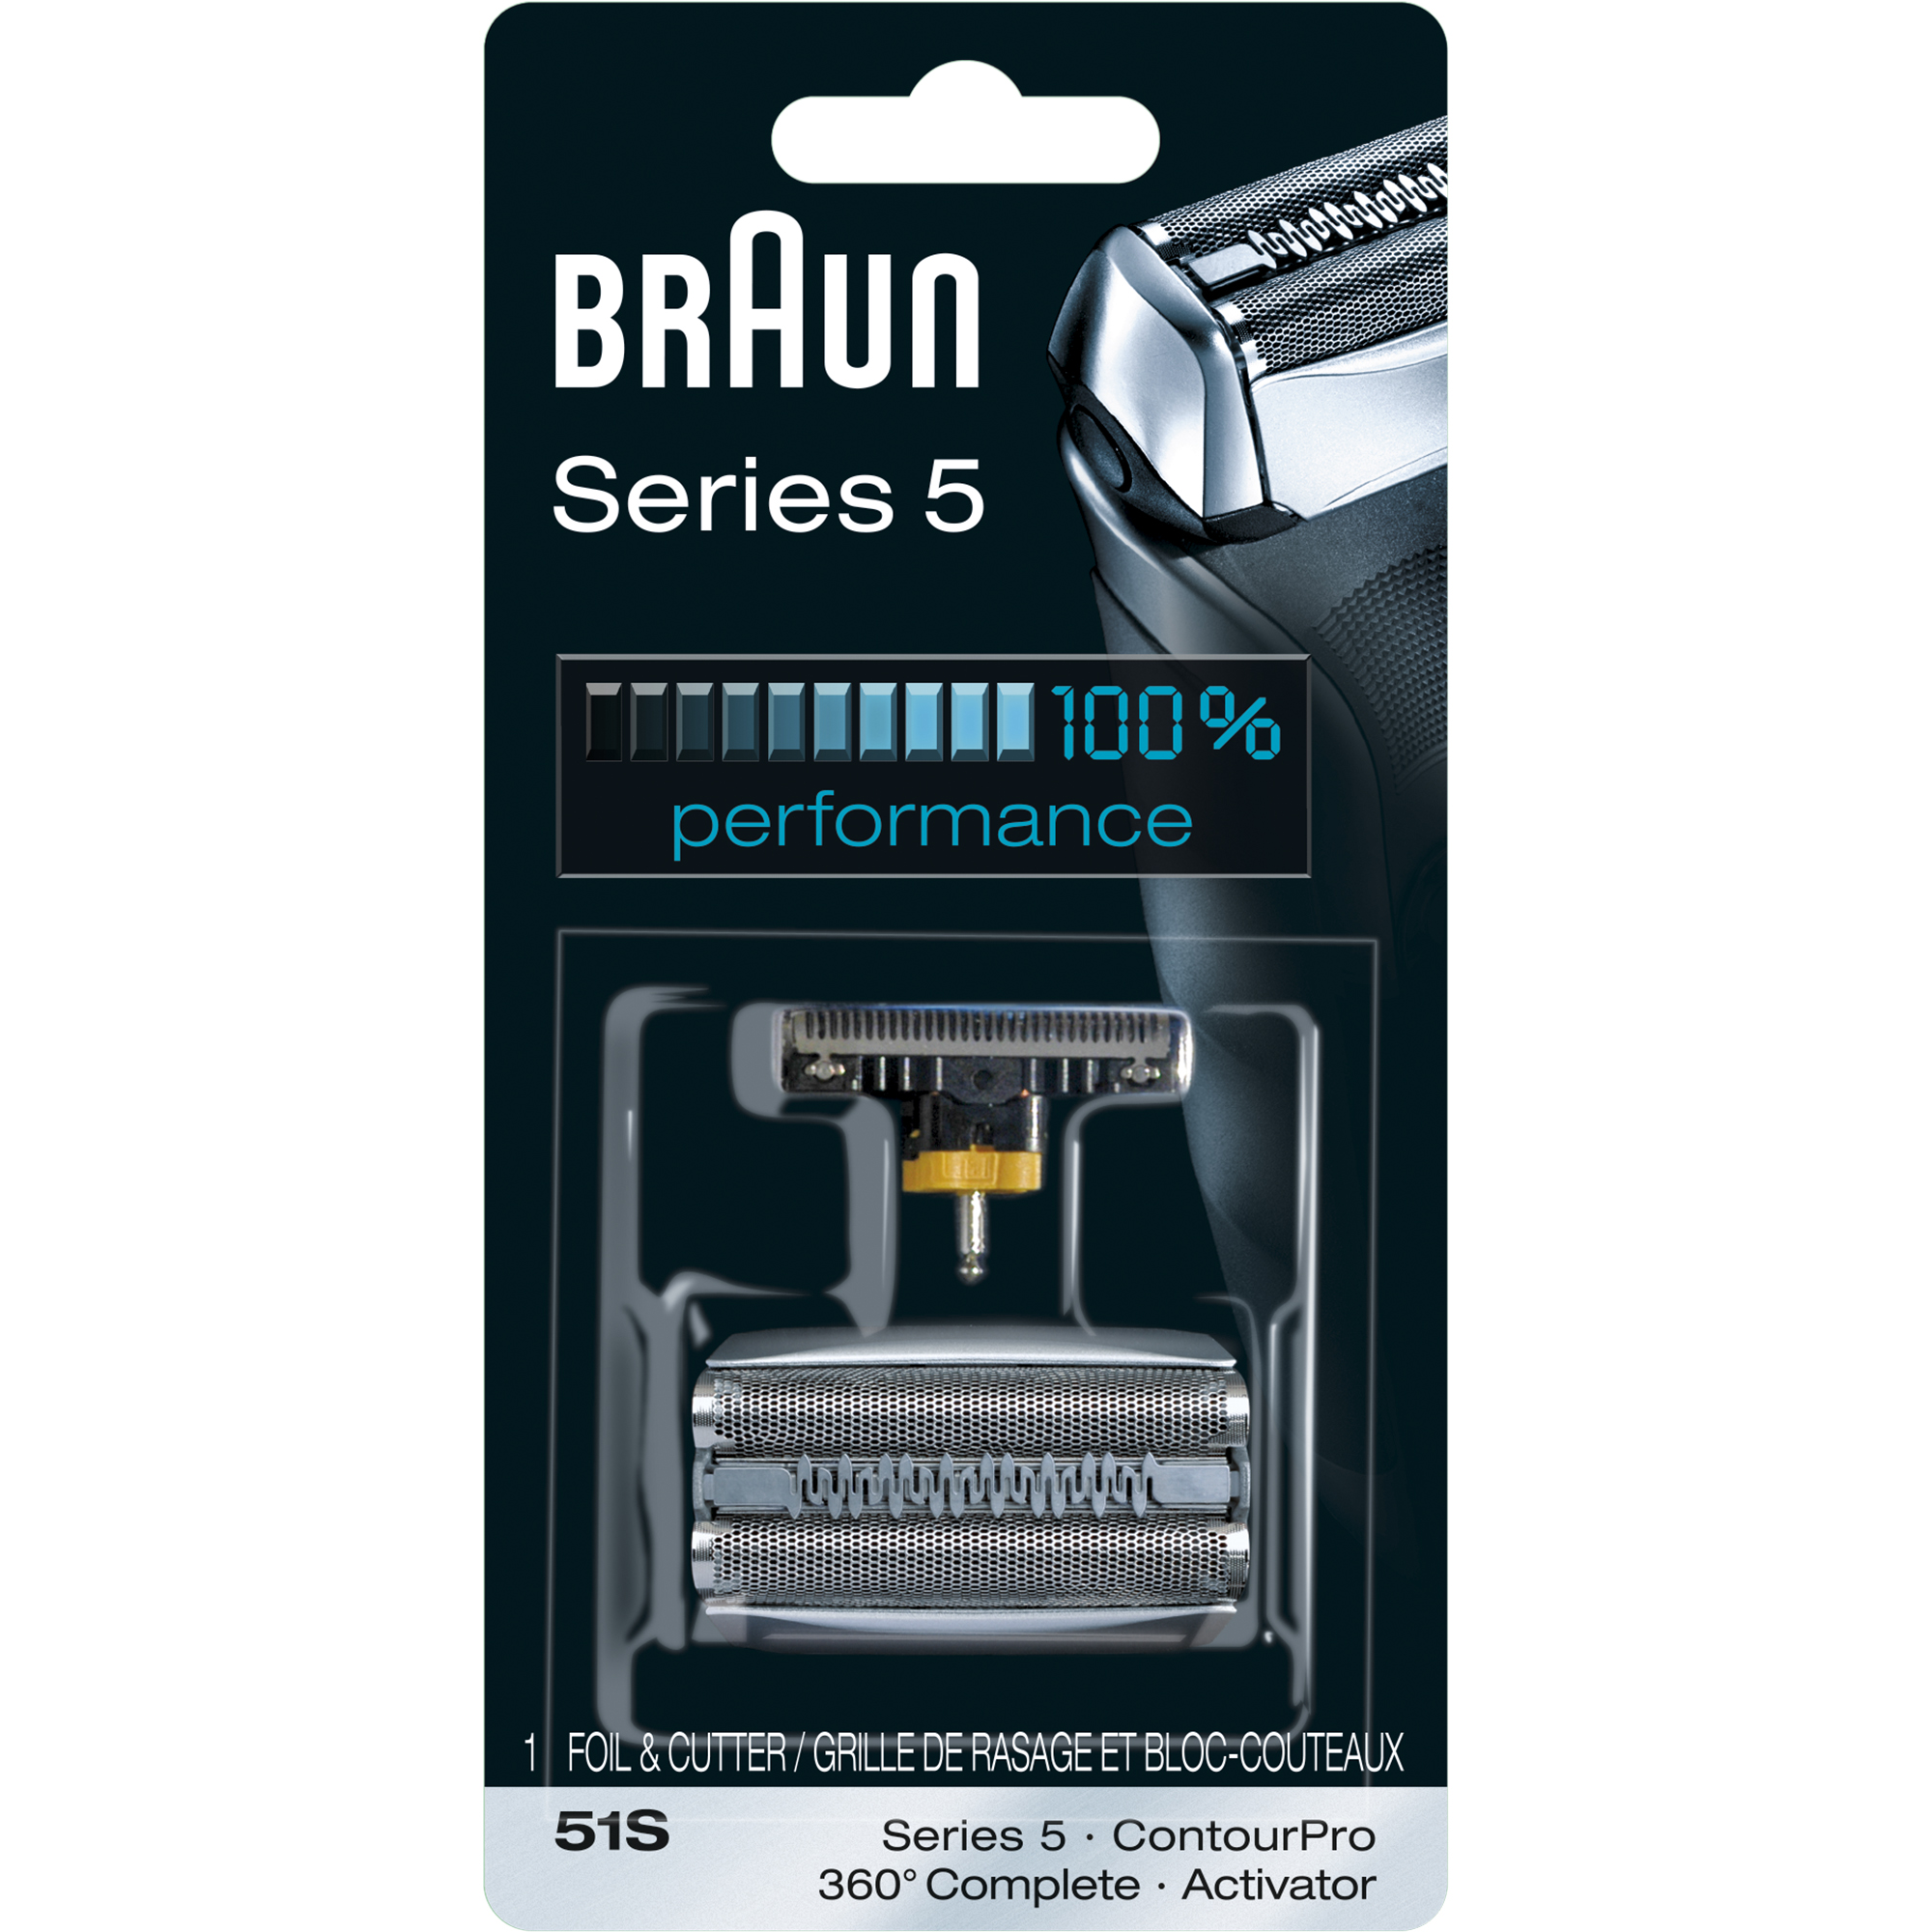 Braun Shaver Replacement Part 51 S Silver- Compatible with Series 5 shavers